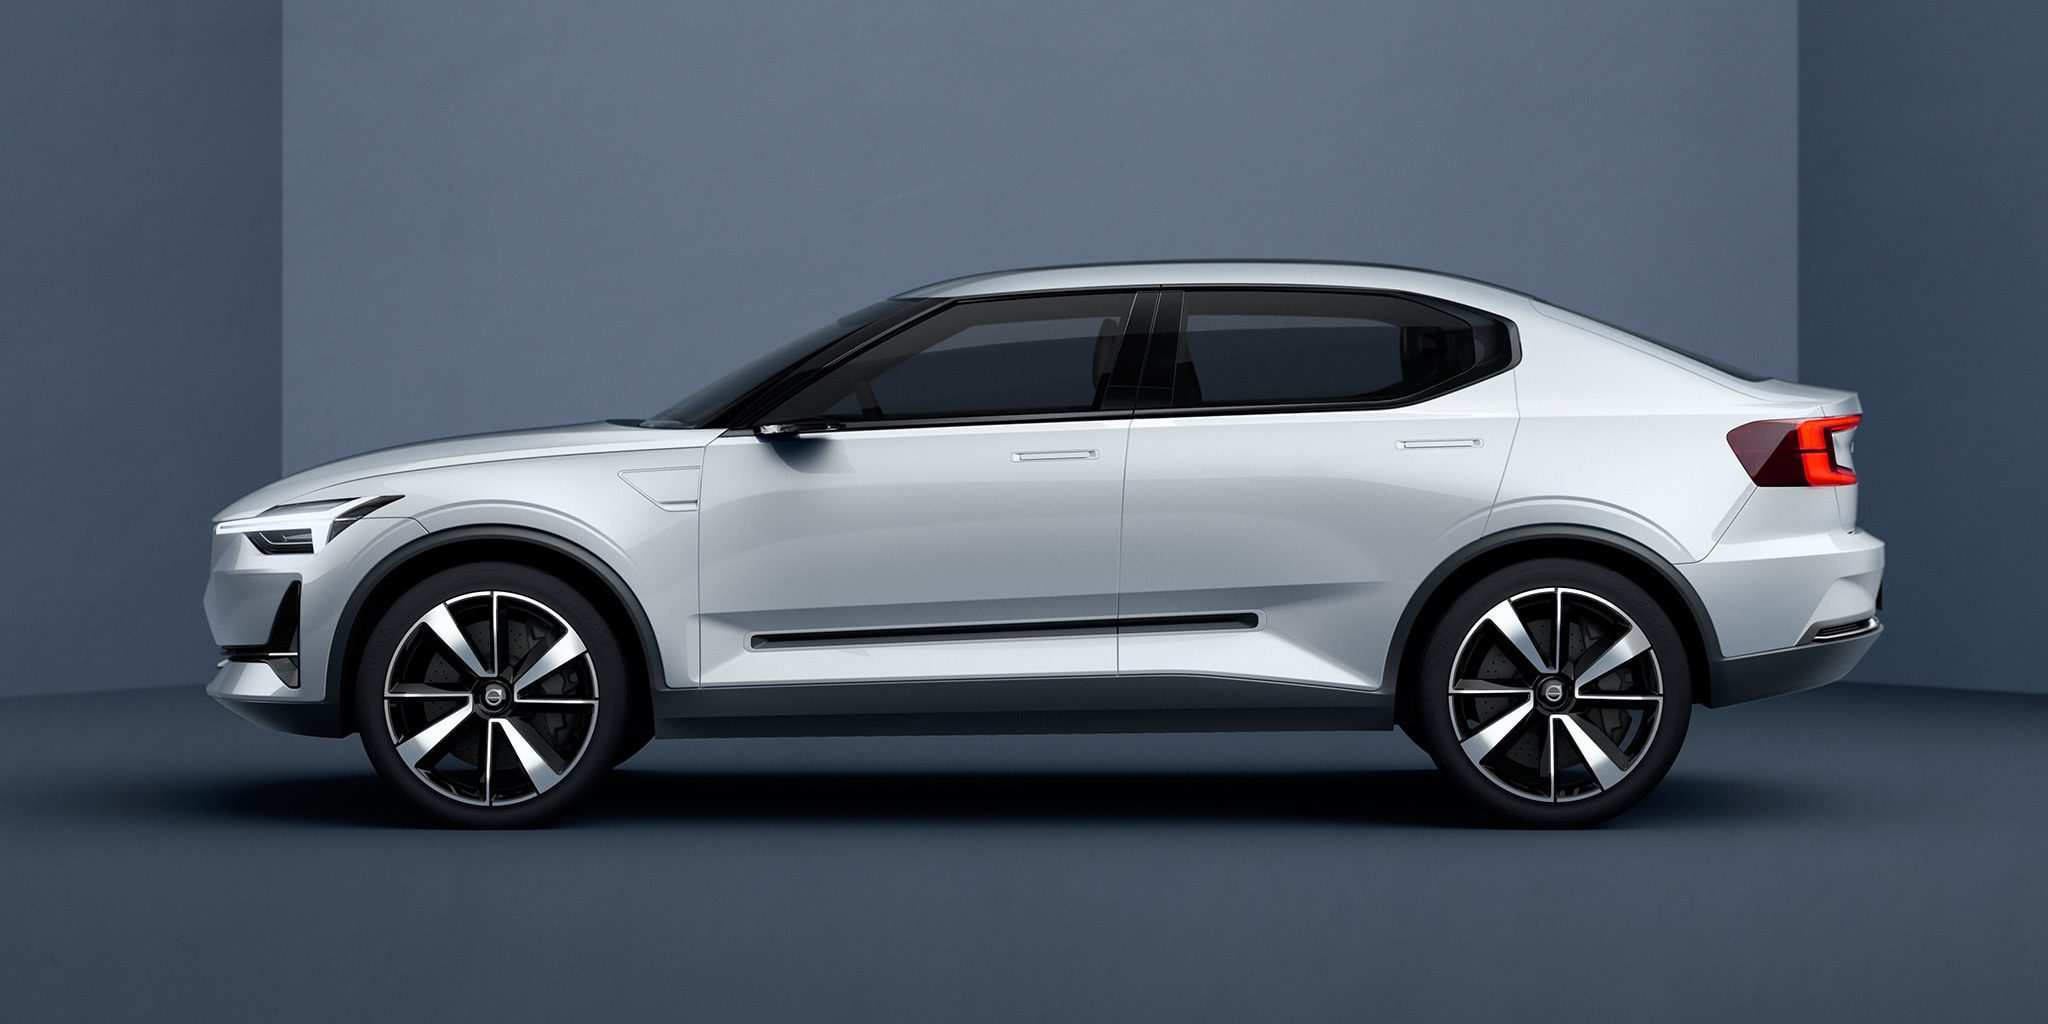 19 New Electric Volvo 2019 Price